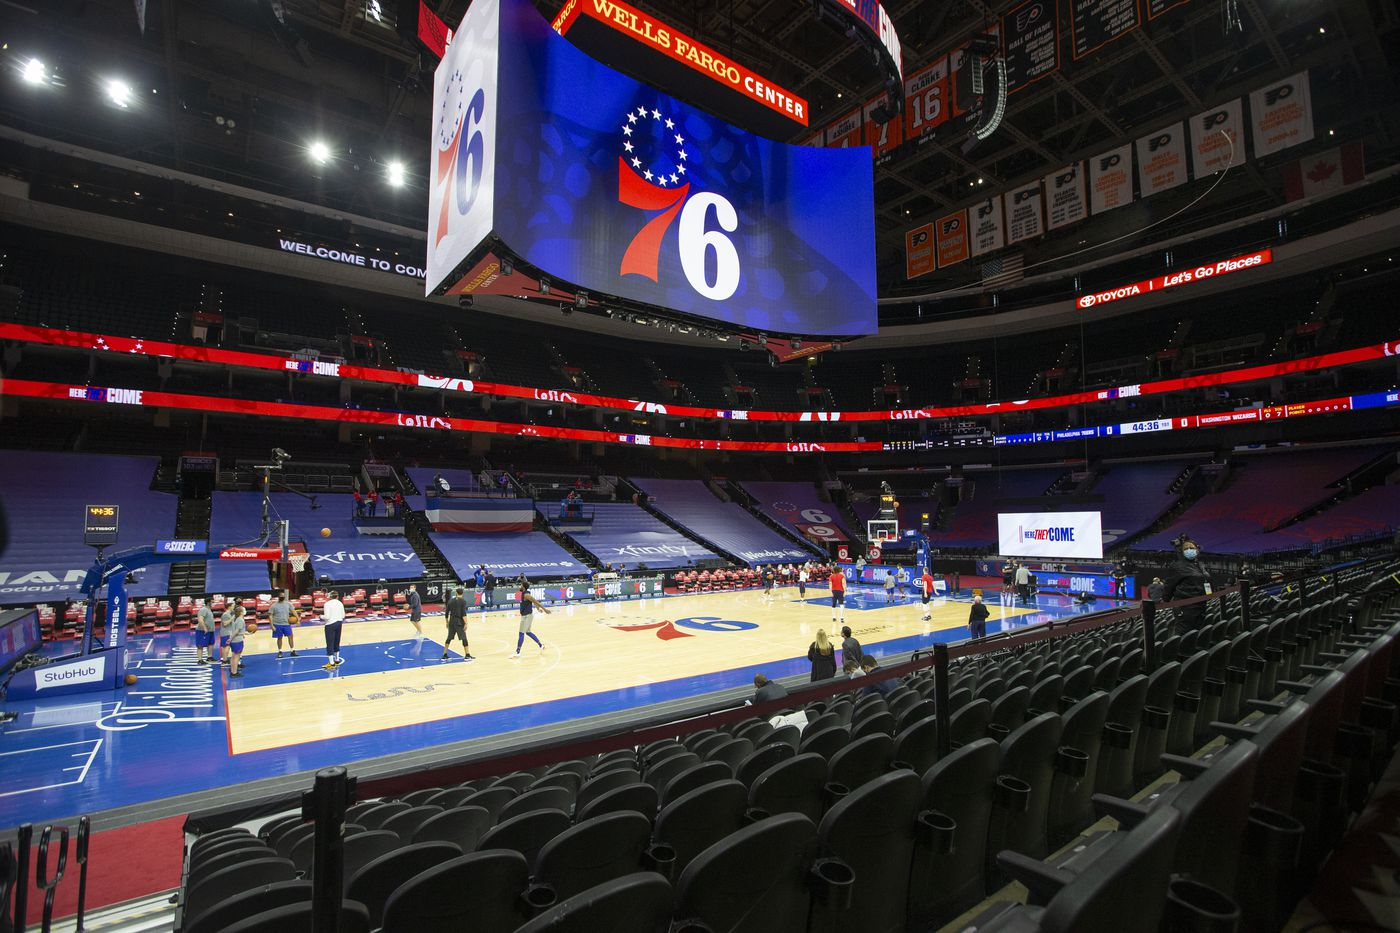 The basketball court at Wells Fargo Center with the huge scoreboard showing the 76ers logo.